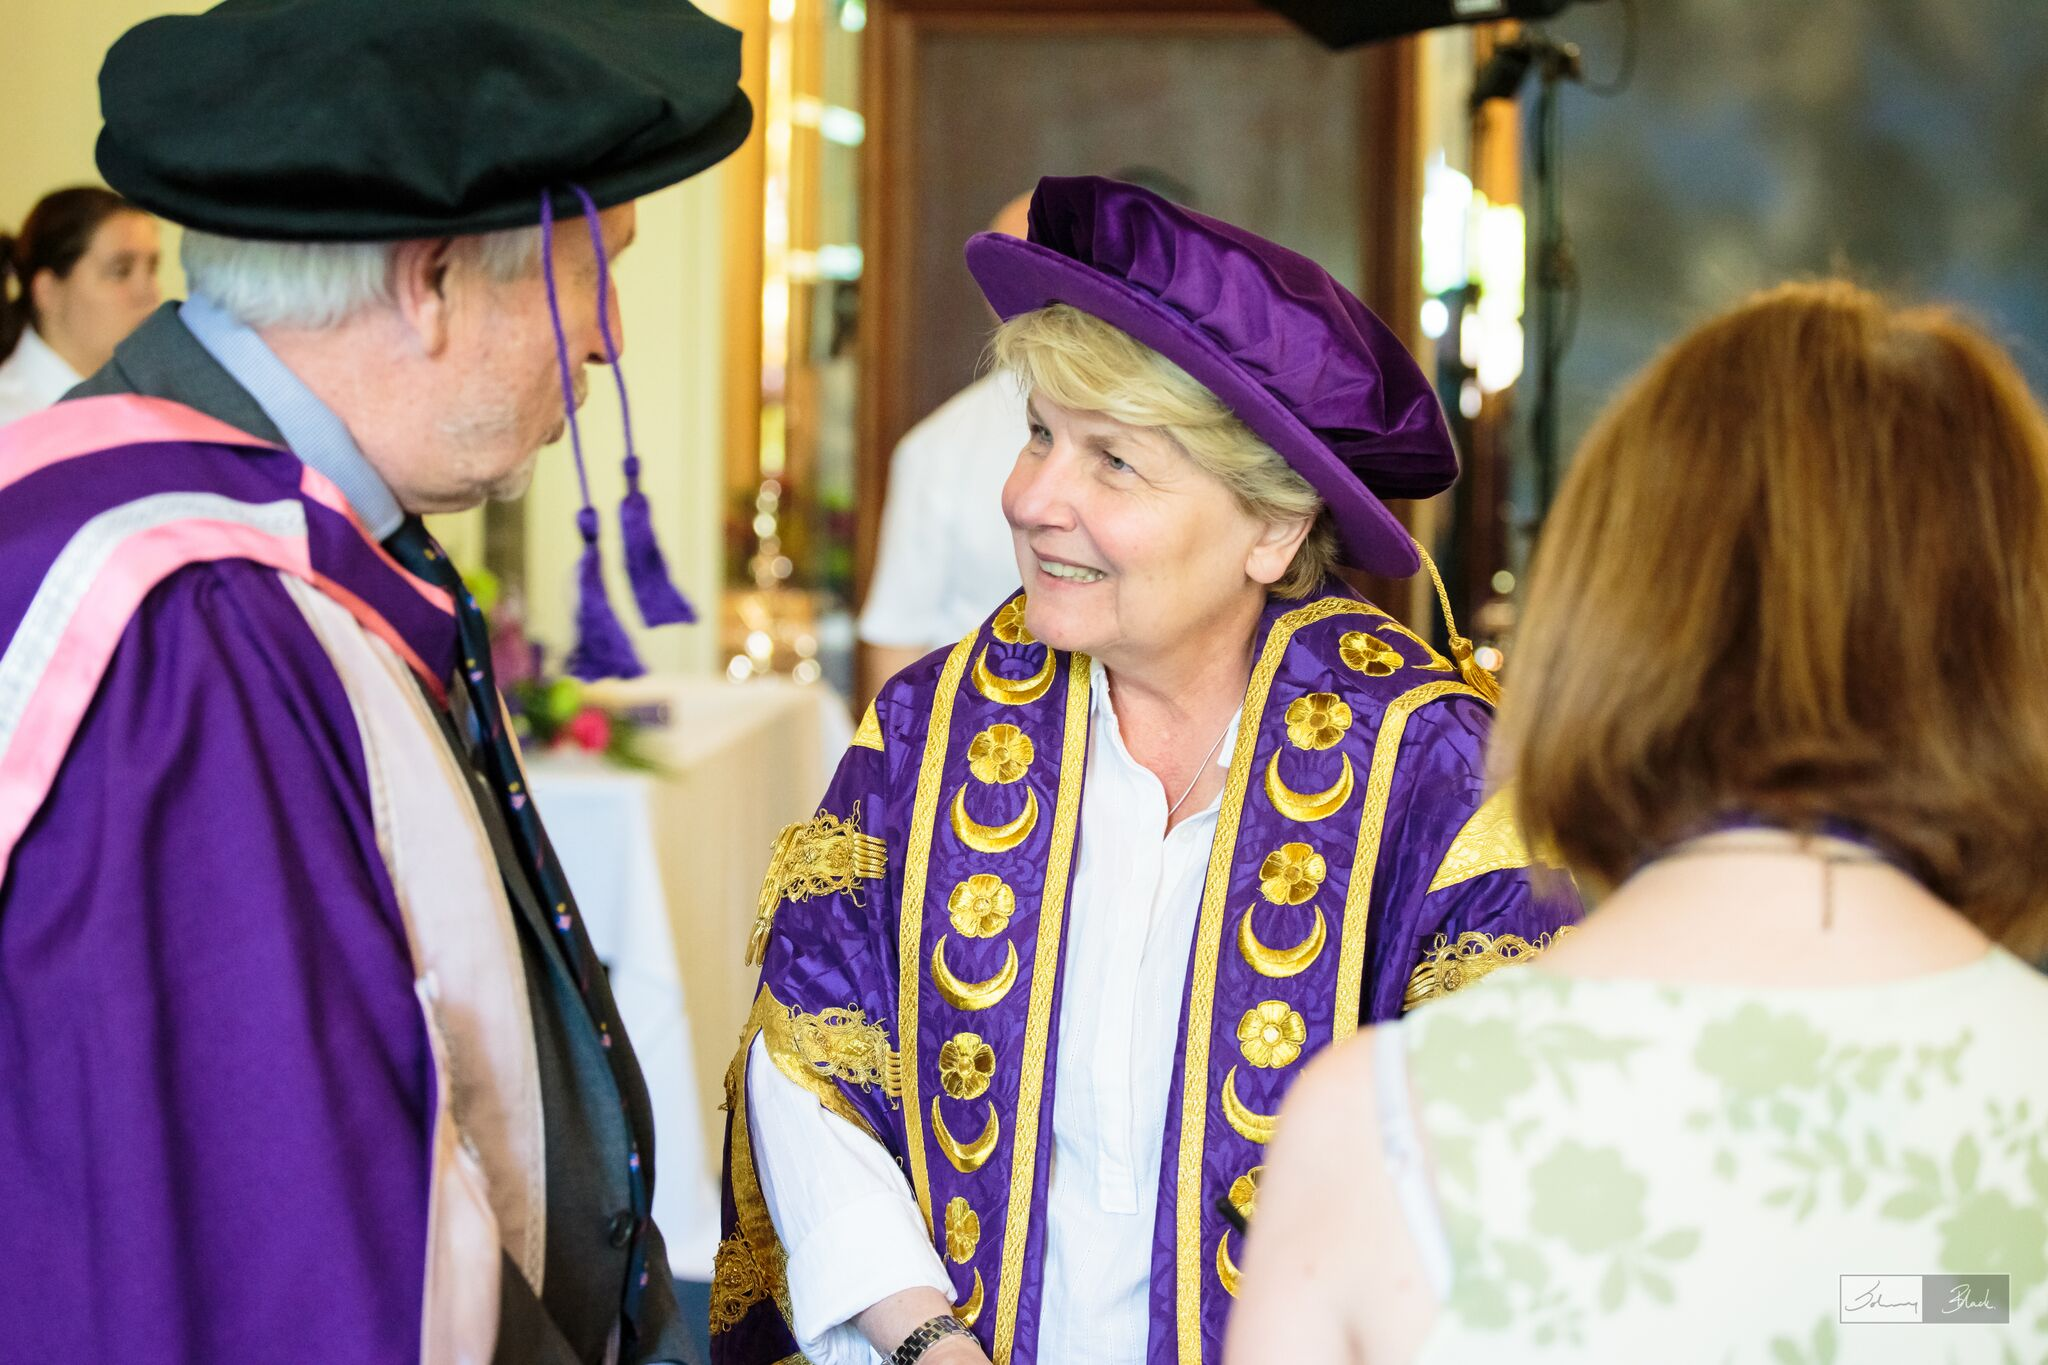 Team Britannia's skipper receives an Honorary Doctorate from the University of Portsmouth.